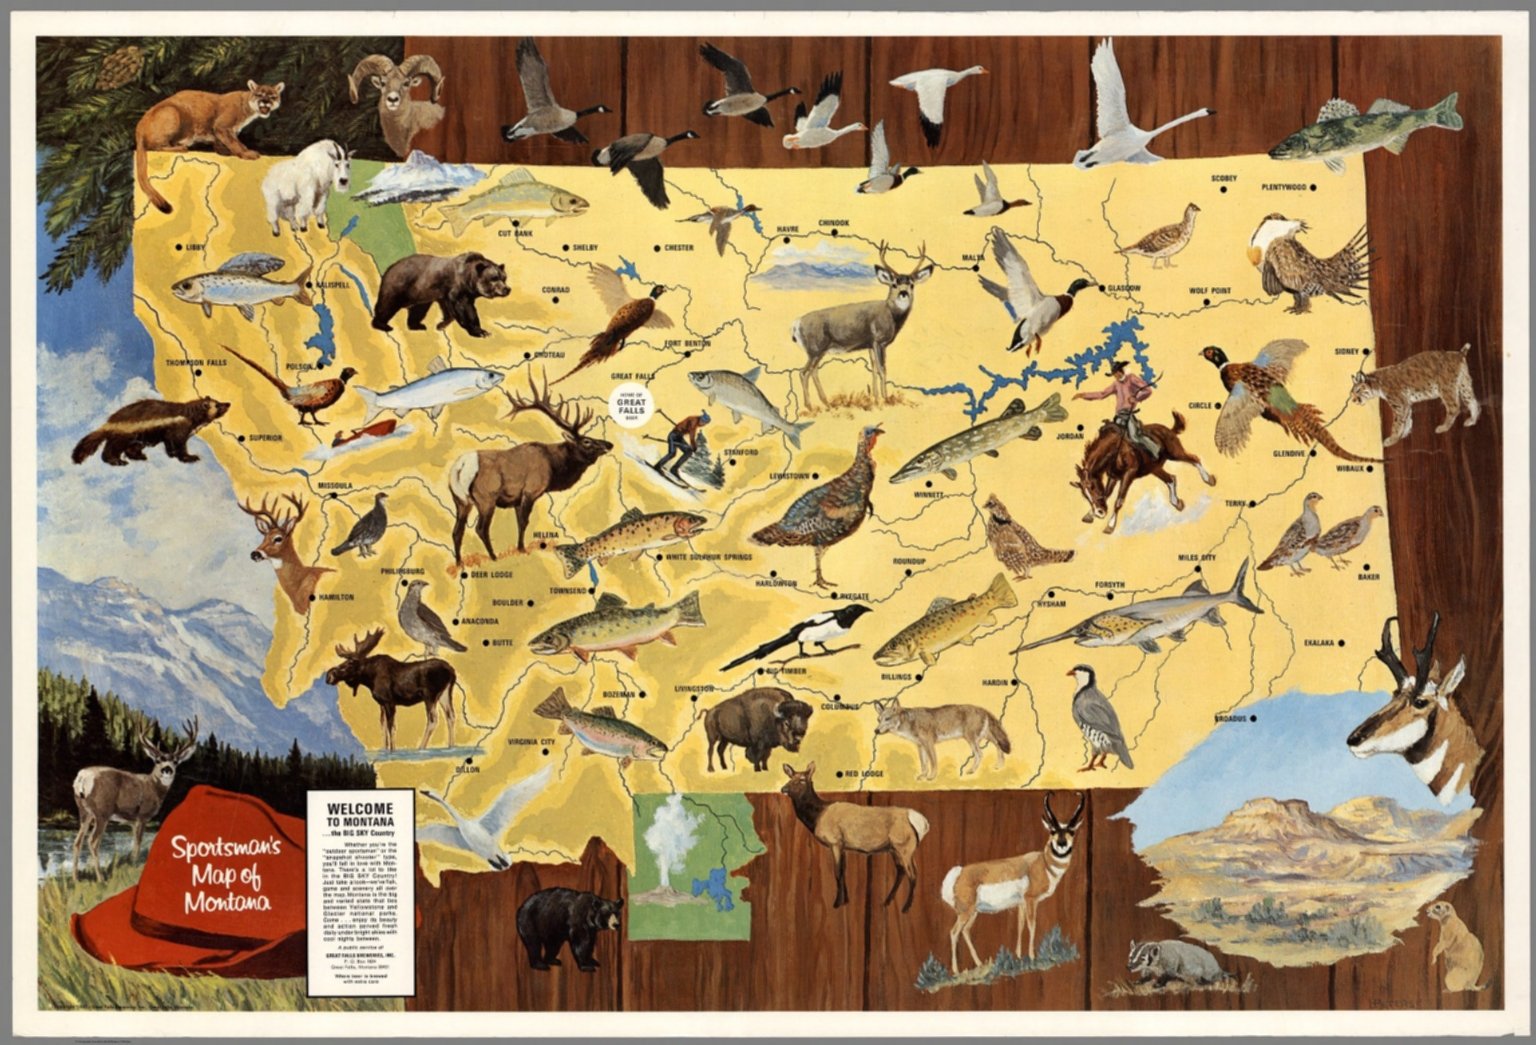 Sportsmans Map Of Montana David Rumsey Historical Map Collection - Map of montana